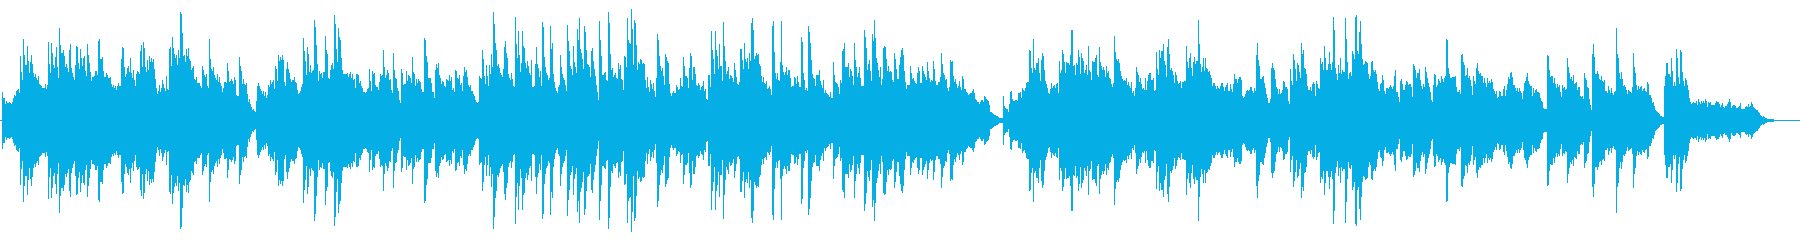 Romantic piano songs's reproduced waveform